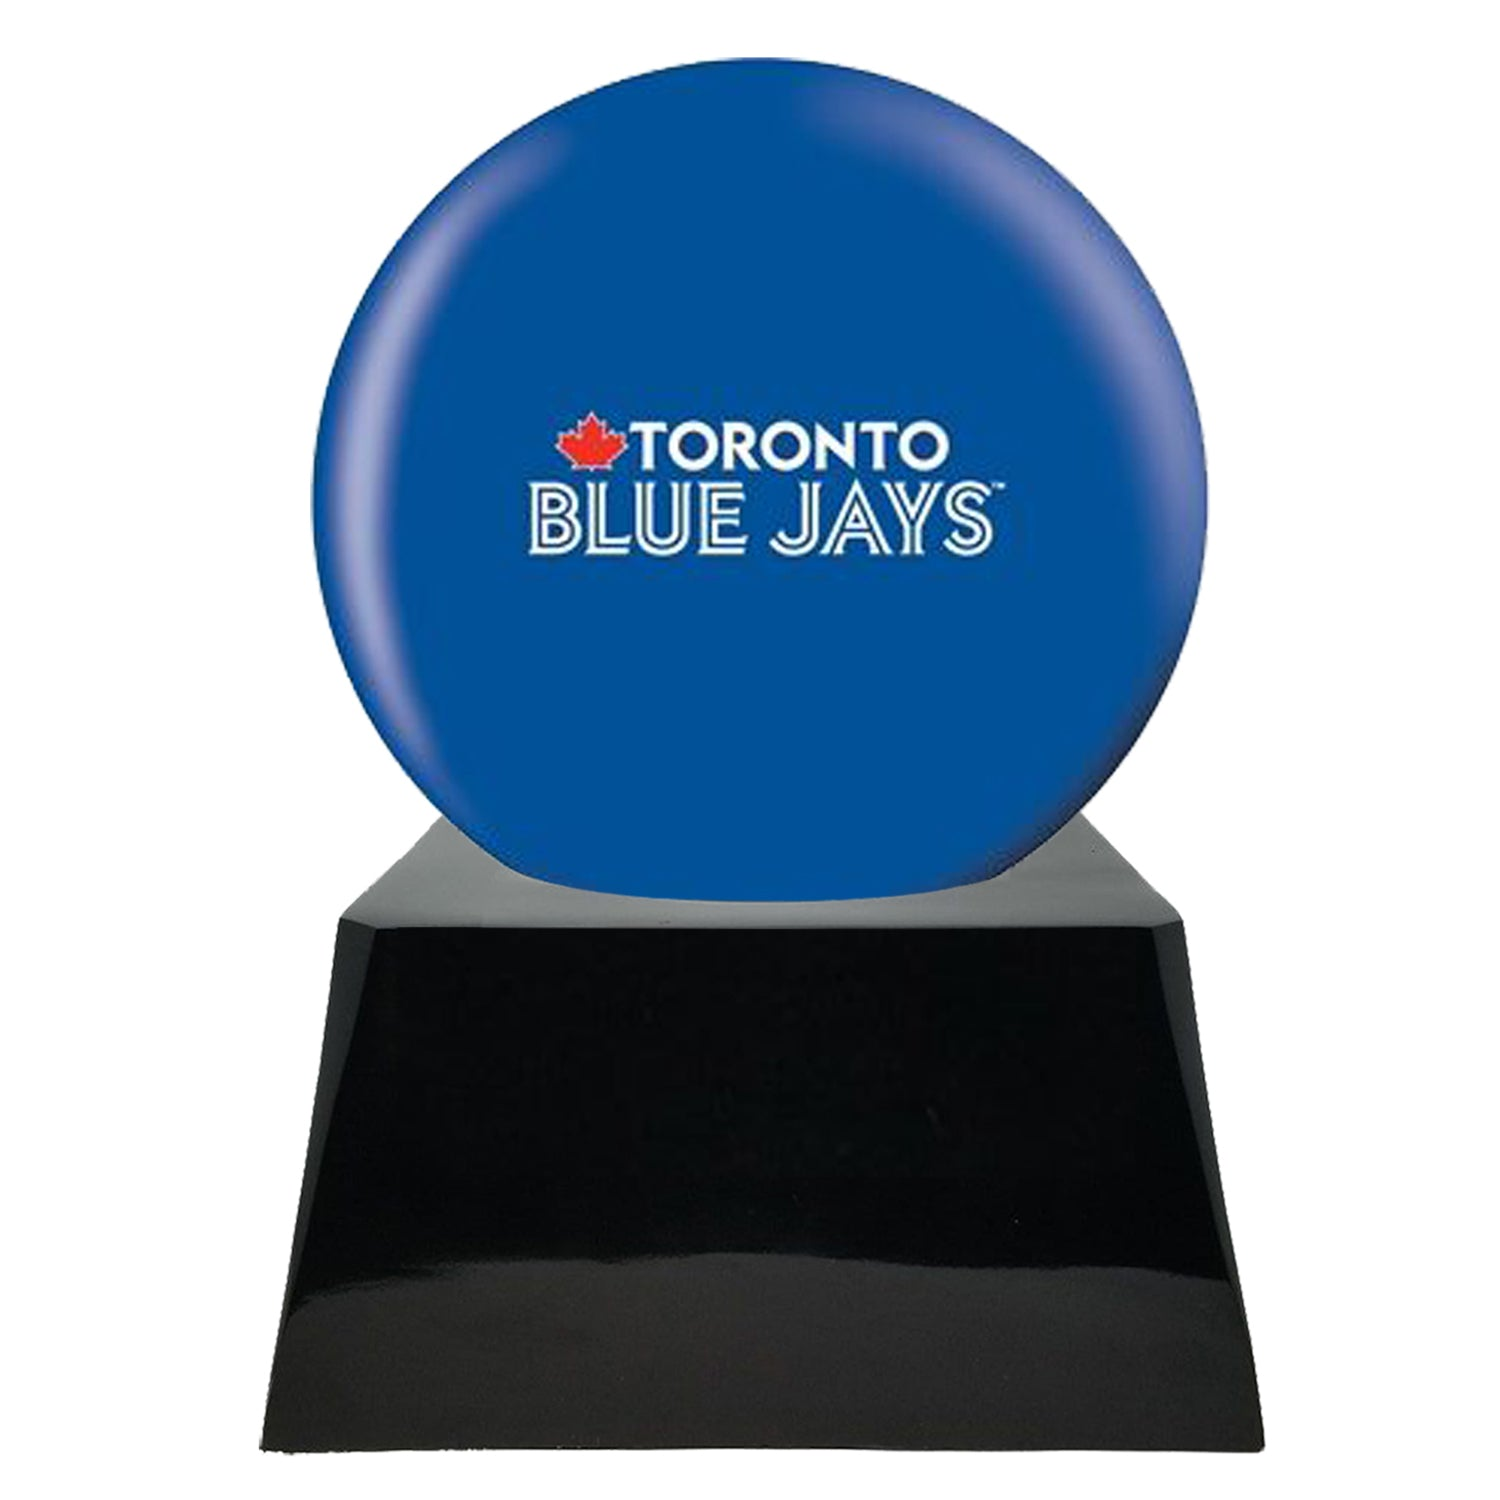 Baseball Team Urn - Toronto Blue Jays Ball Decor with Custom Metal Plaque Baseball Cremation Urn for Human Ashes - MLB URN - Memorials4u